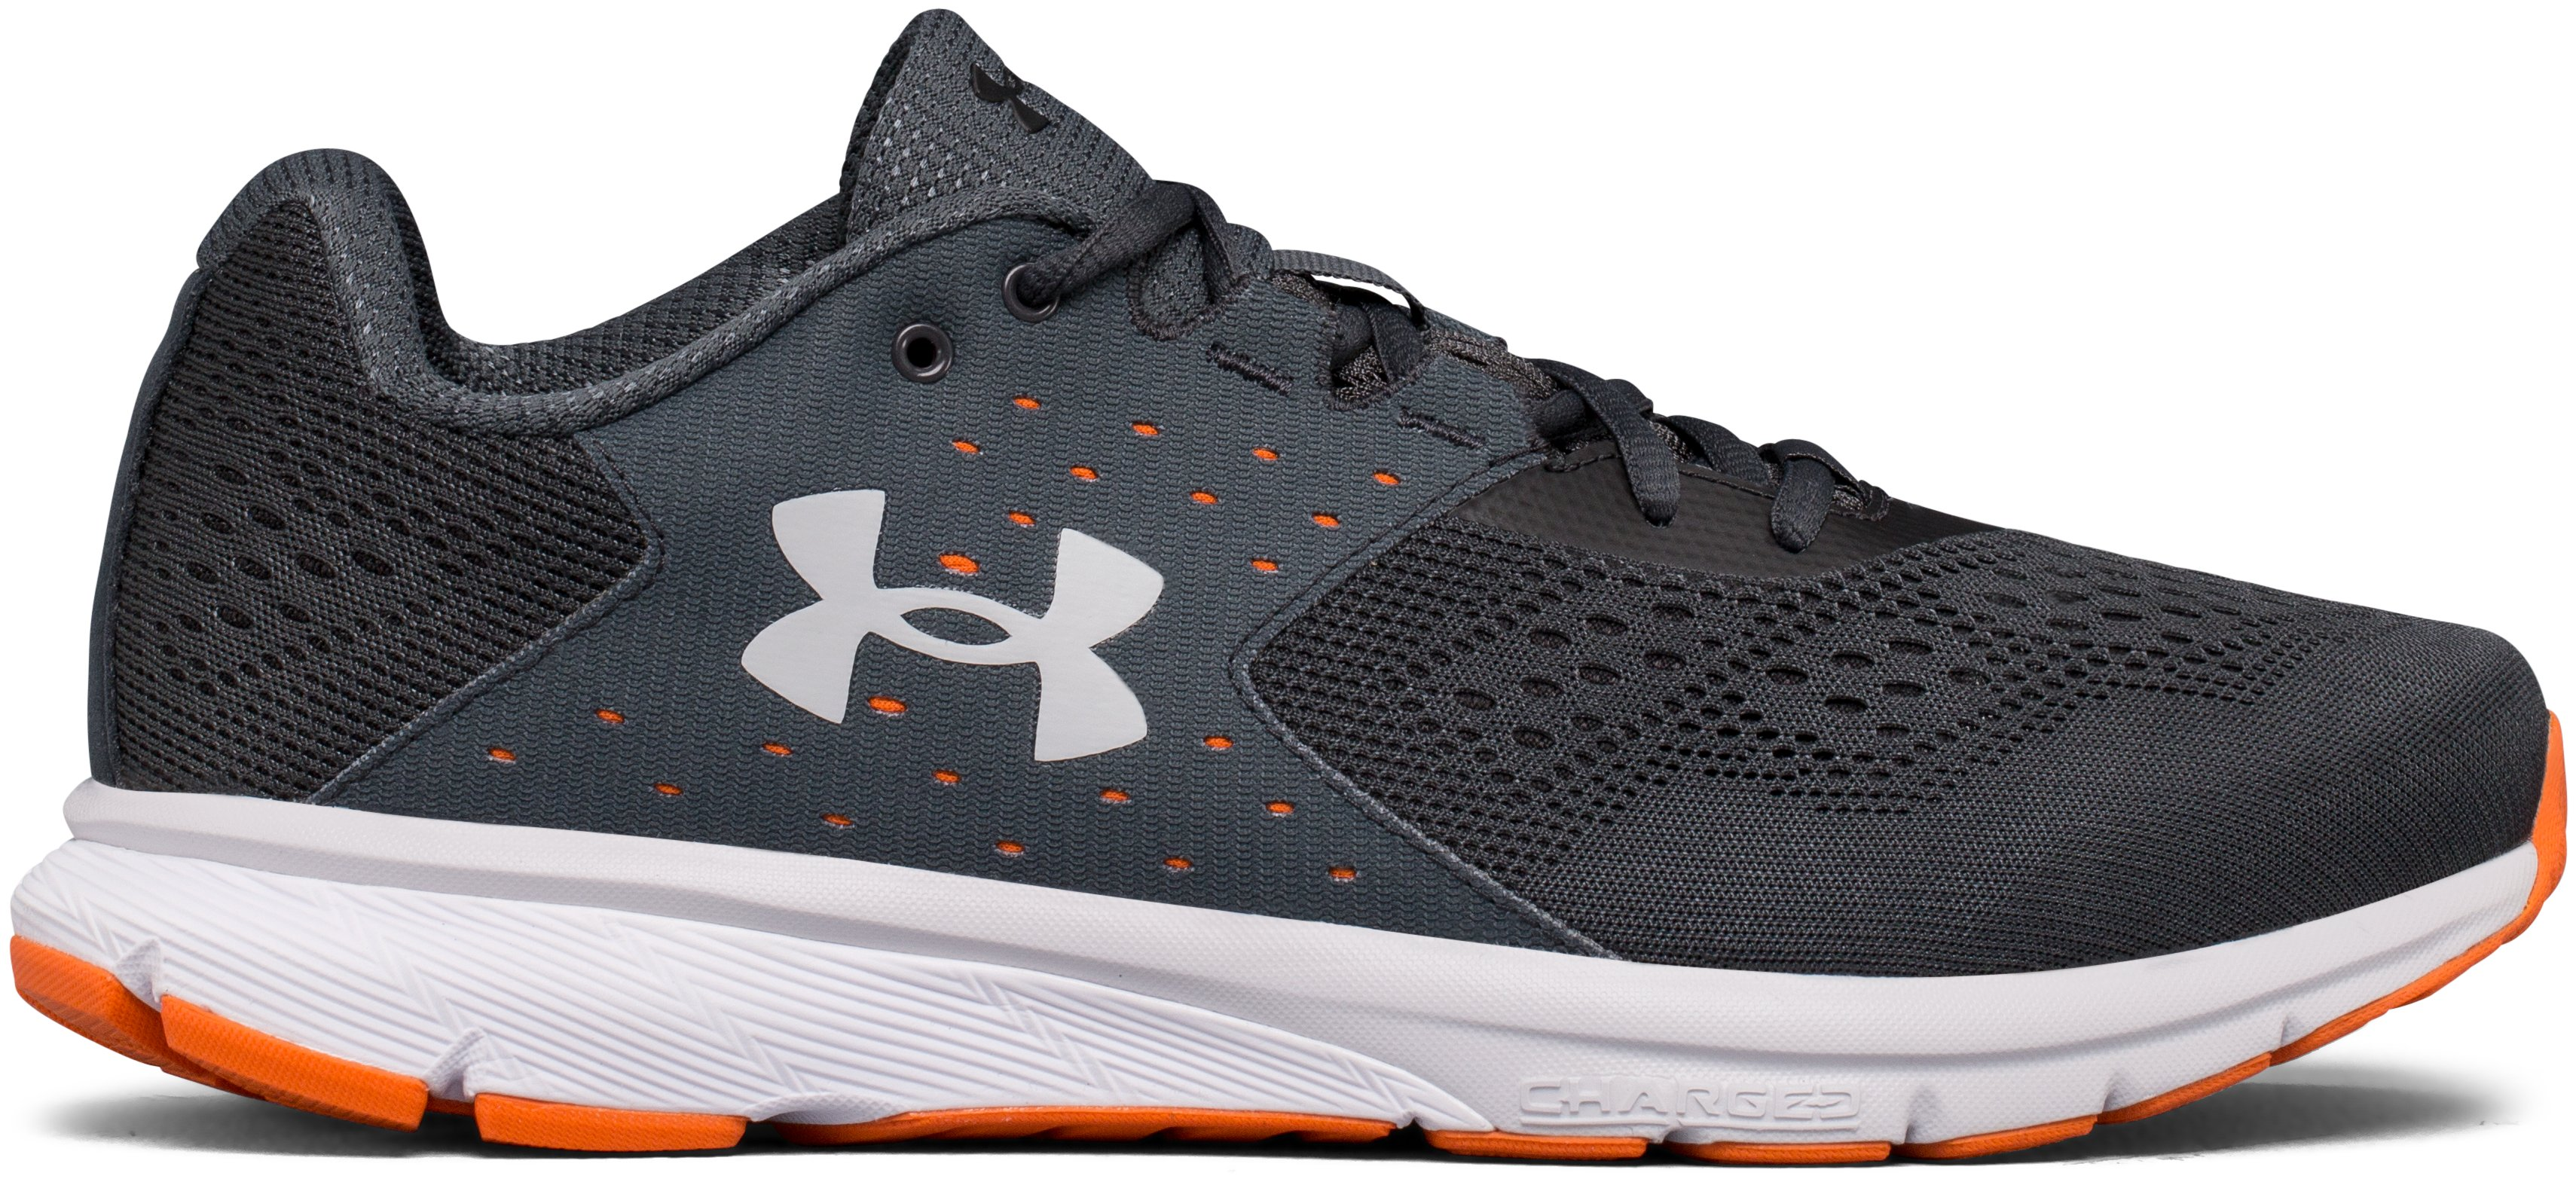 Men's UA Charged Rebel – Wide (2E) Running Shoes, STEALTH GRAY